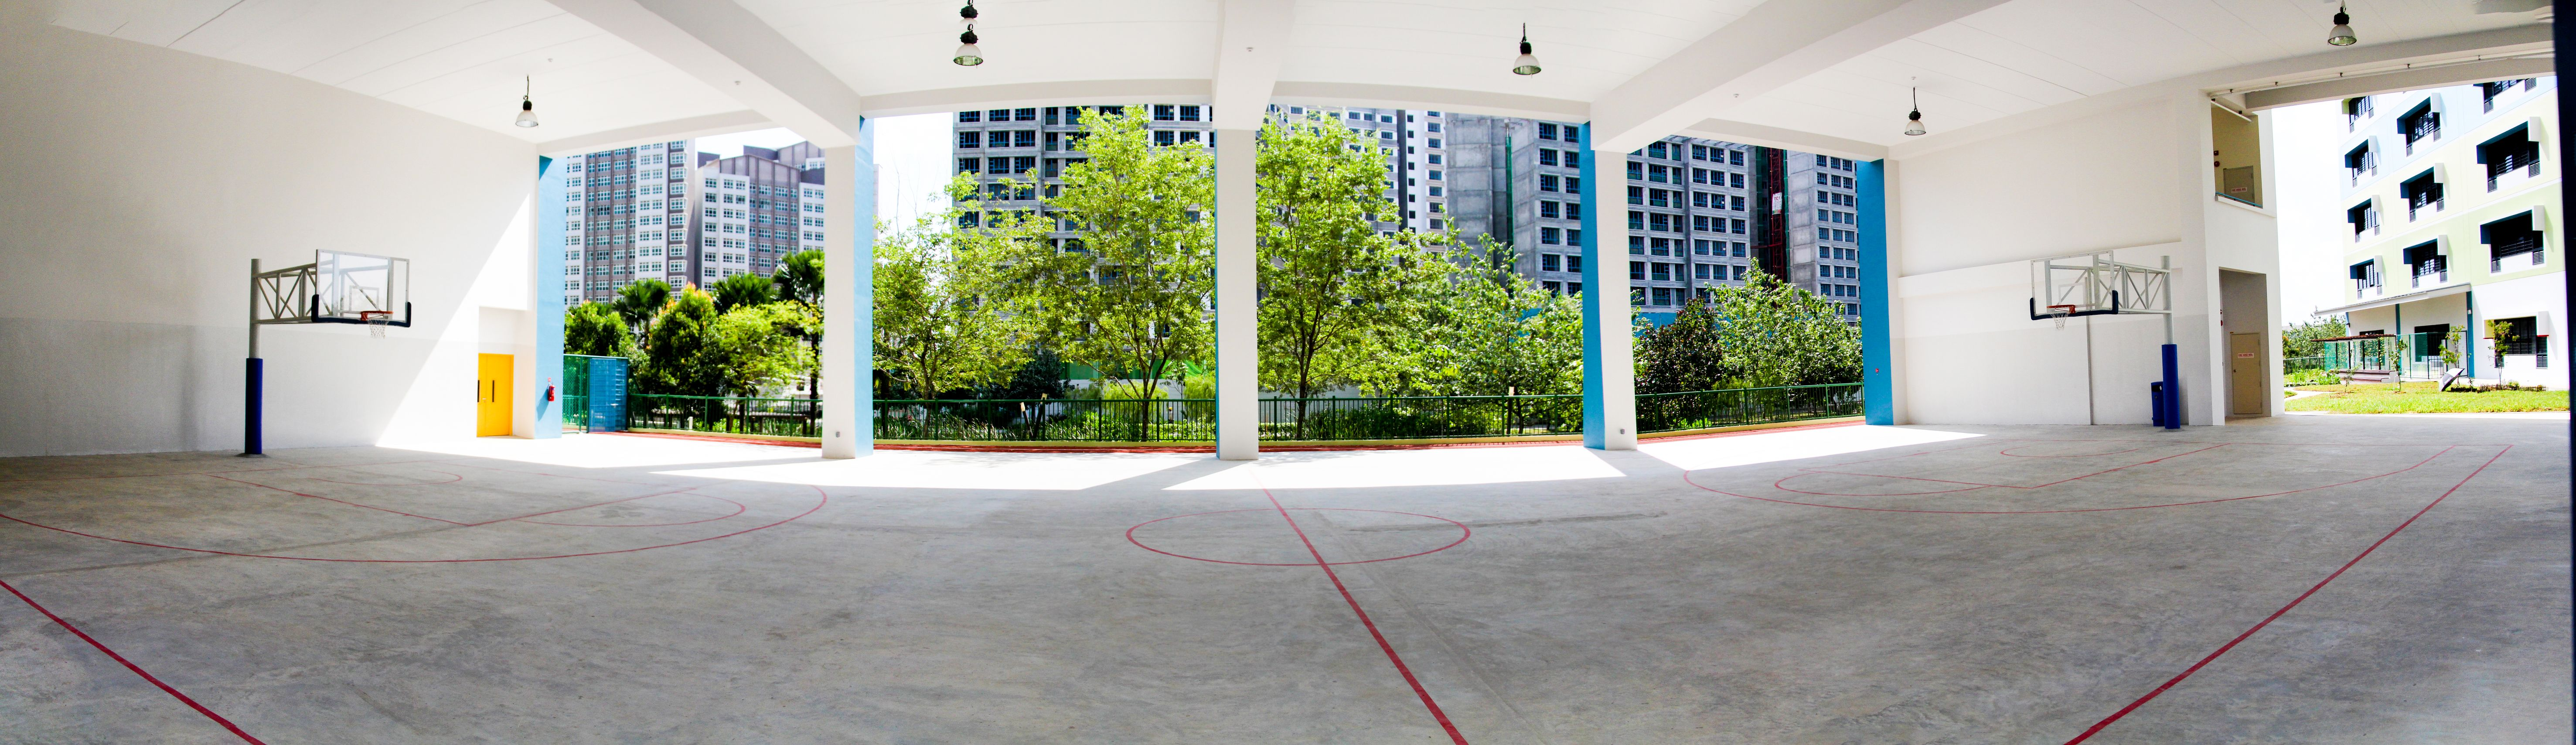 Image of Basketball Court